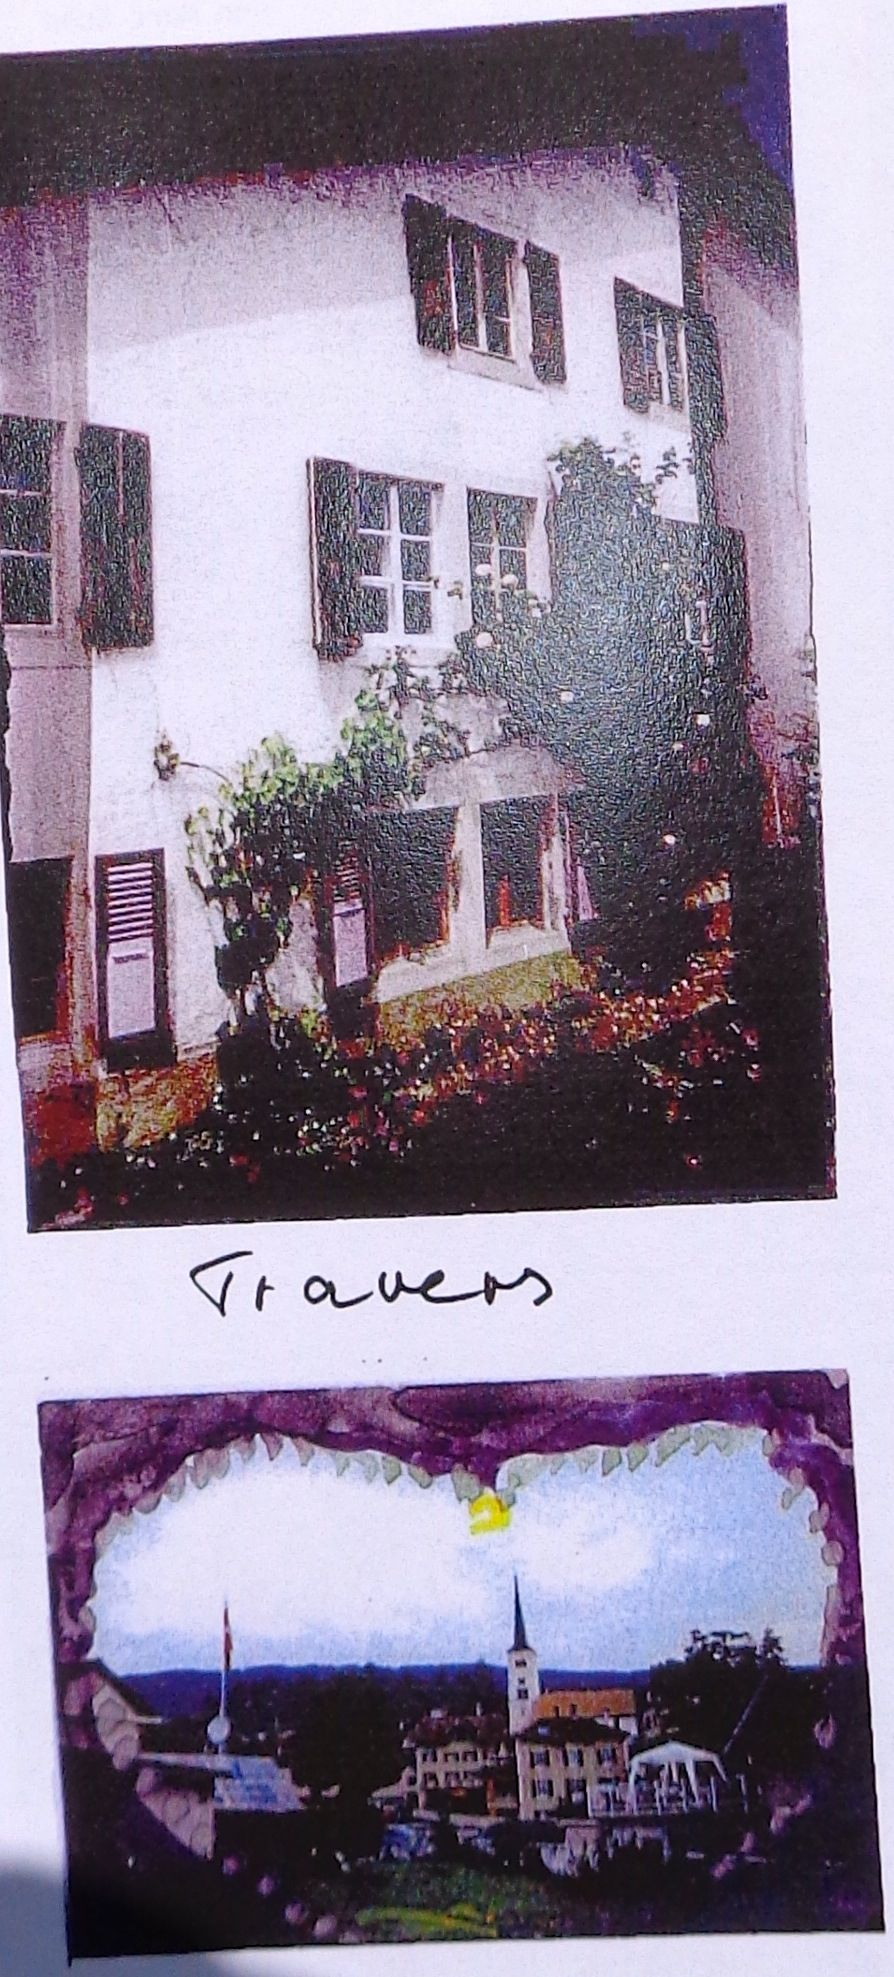 A NEW HOUSE IN TRAVERS 2000